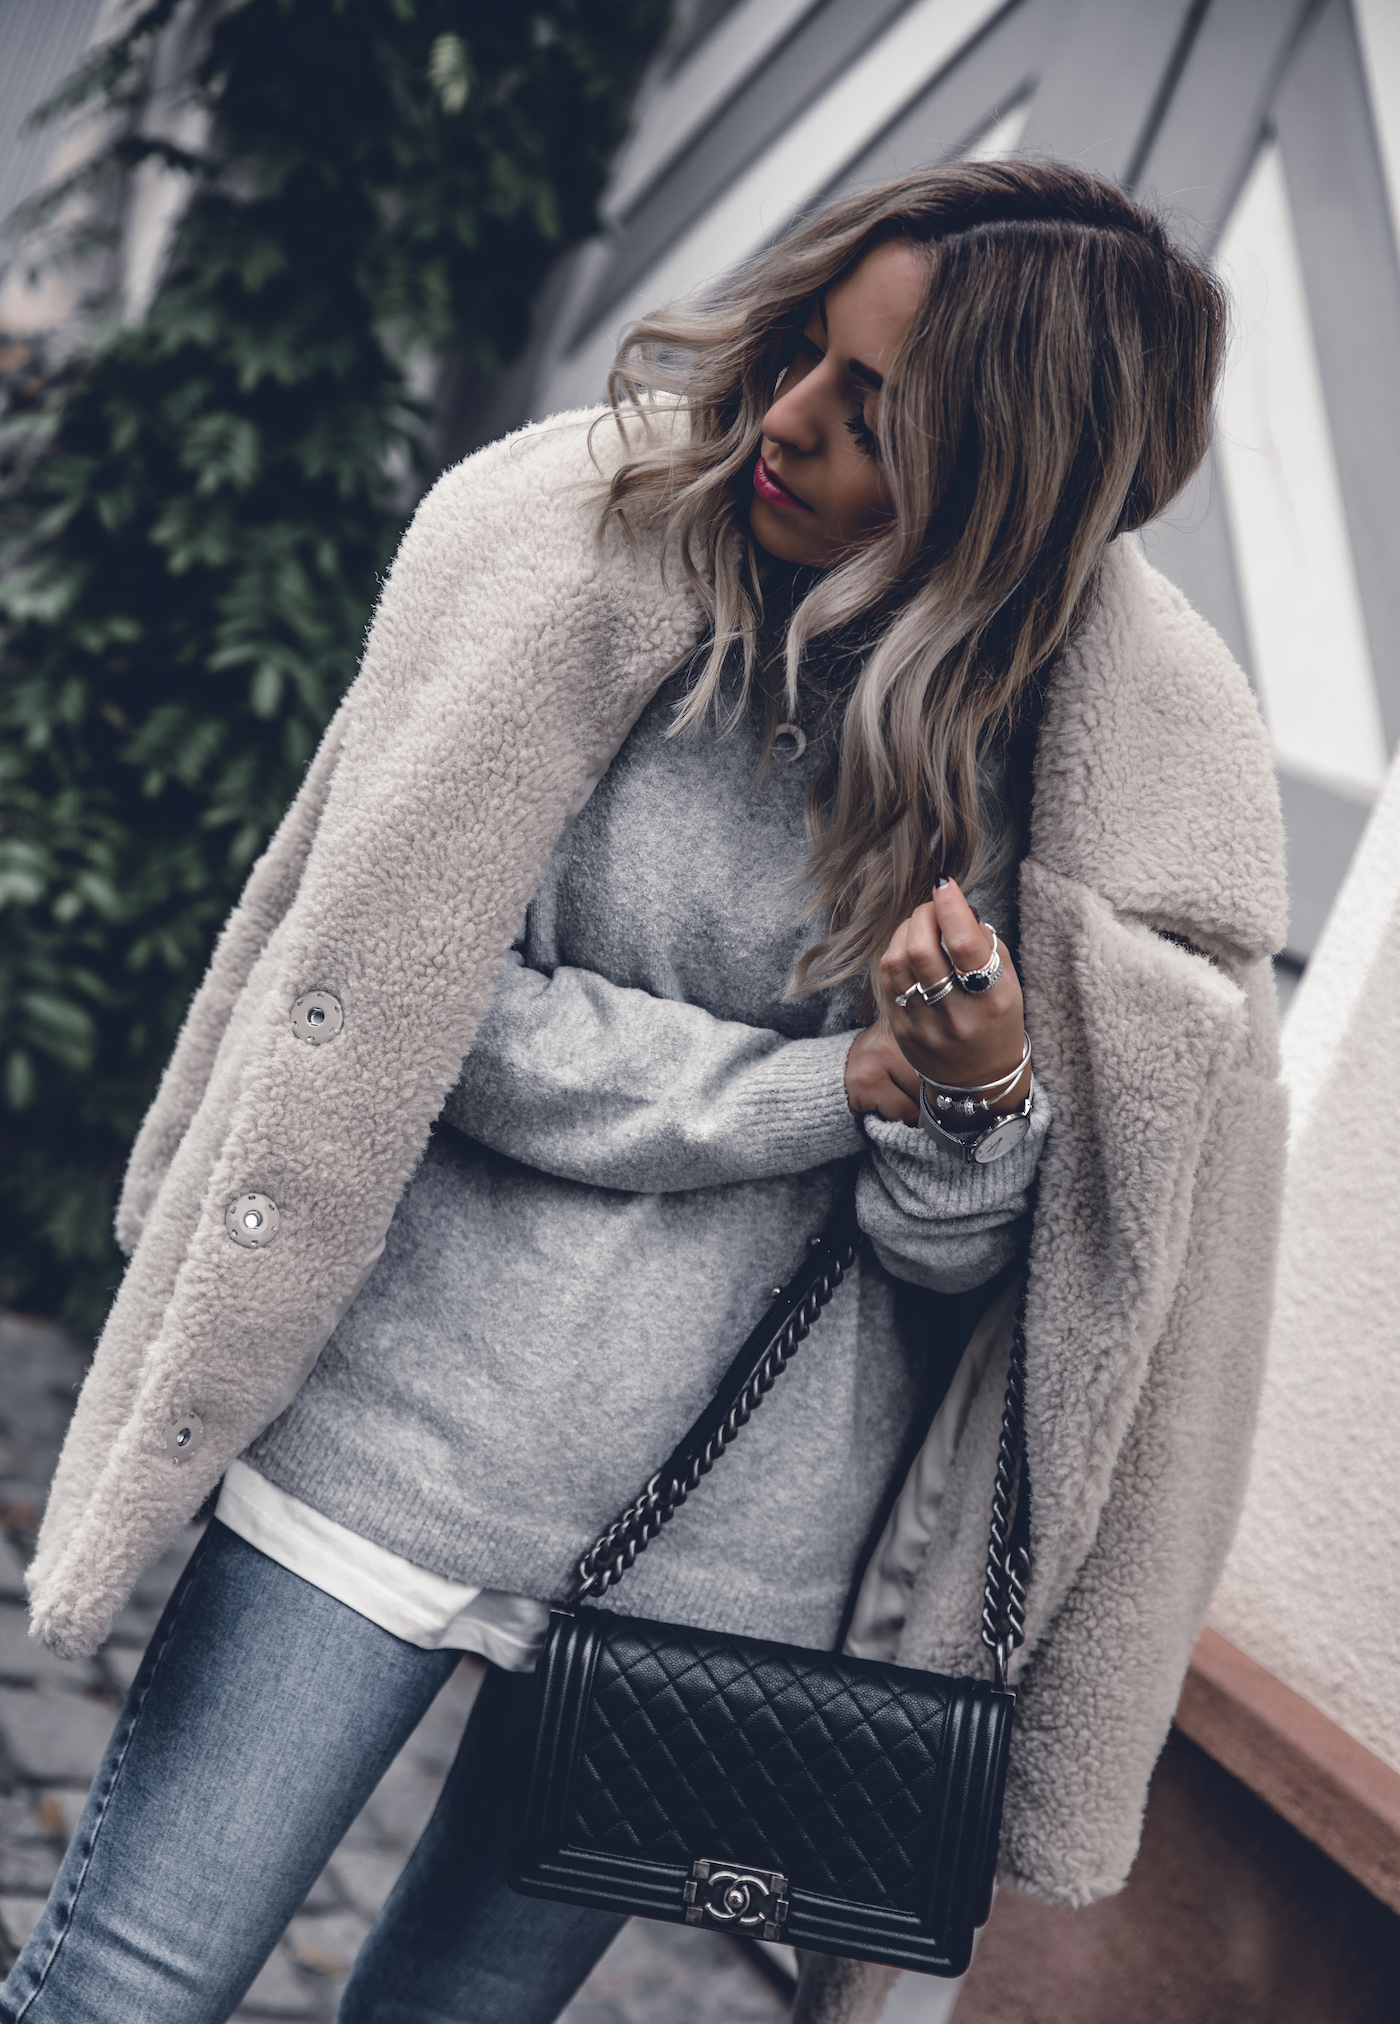 Fall Outfit 2017 Women Cute Preppy Edgy Classy Sweaters Street Styles, Teddy Coat, Chanel Boy Bag, White Boots | seen on WantGetRepeat.com